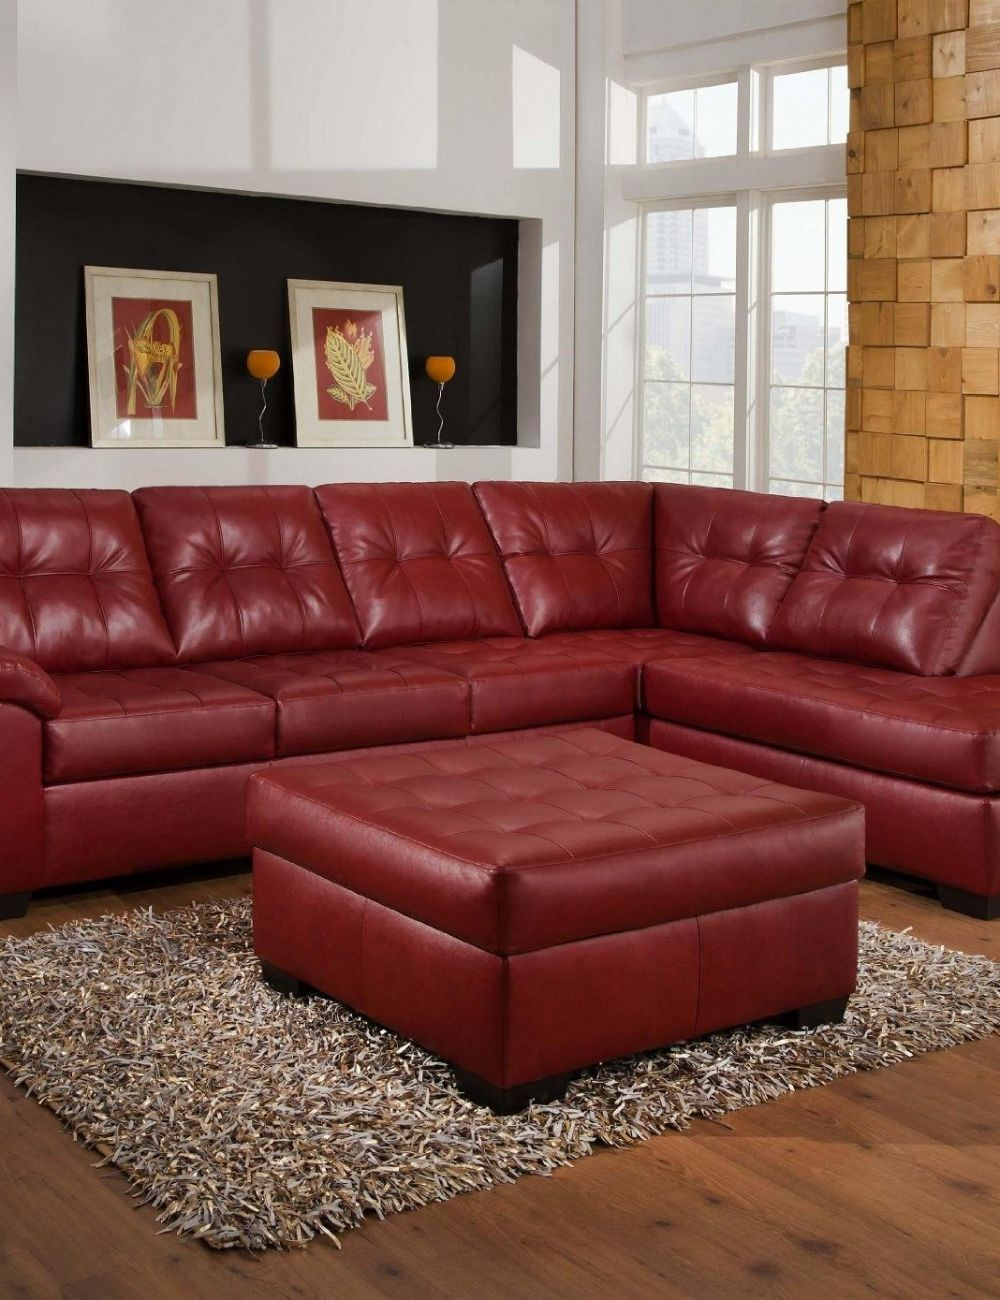 Furniture Living Room Leather Ottomans Red